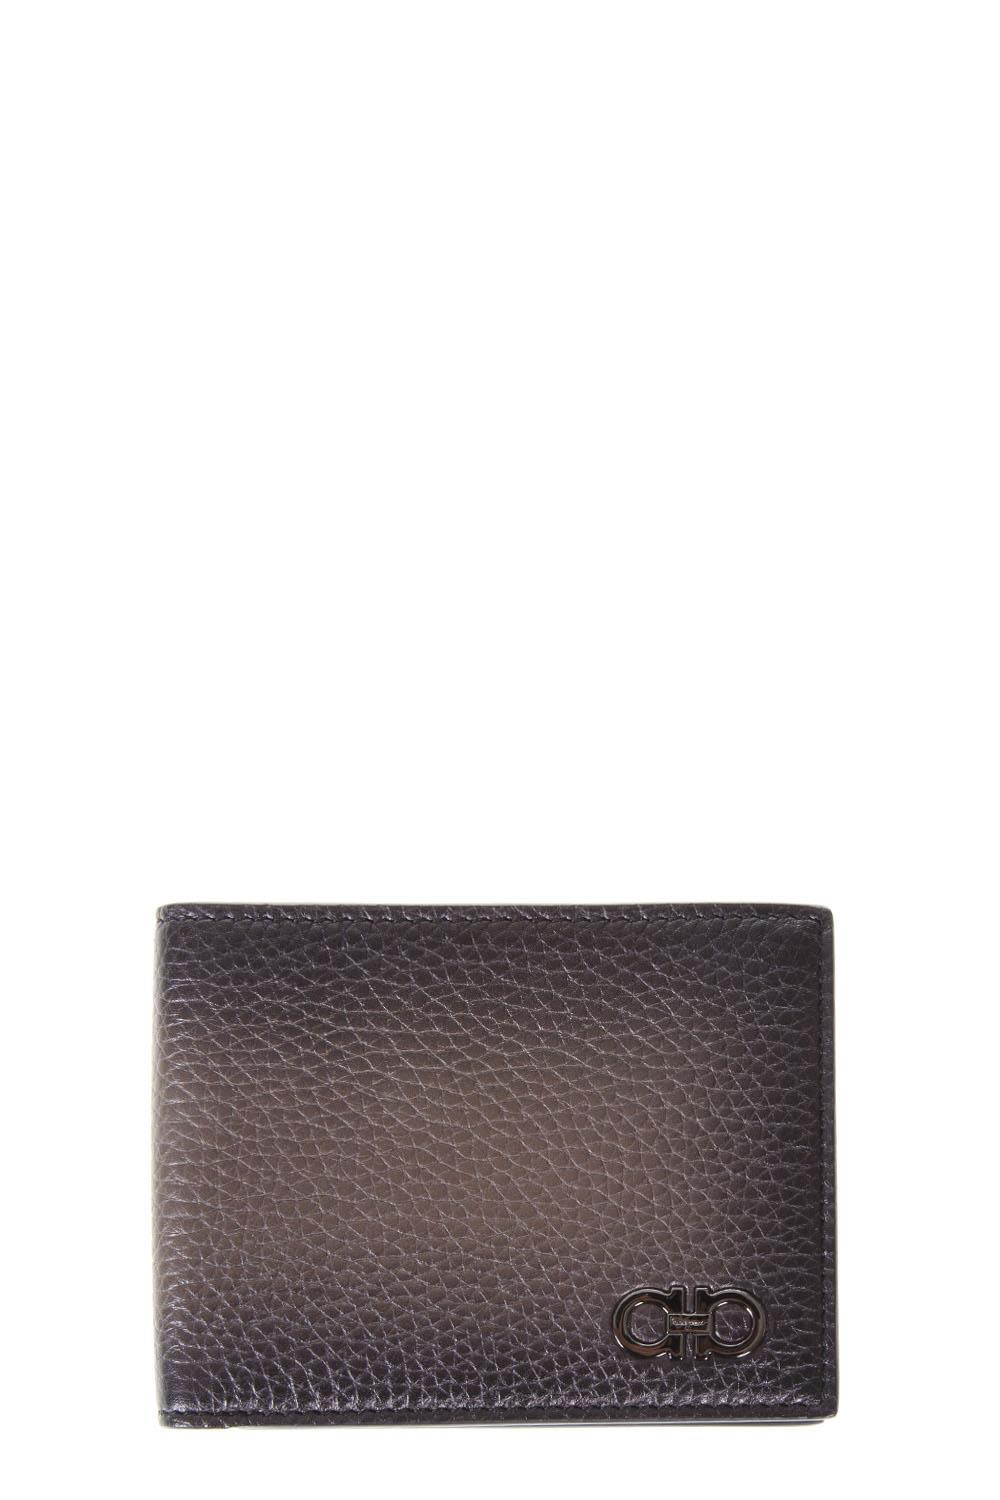 Salvatore Ferragamo Sepia Leather Gancini Wallet